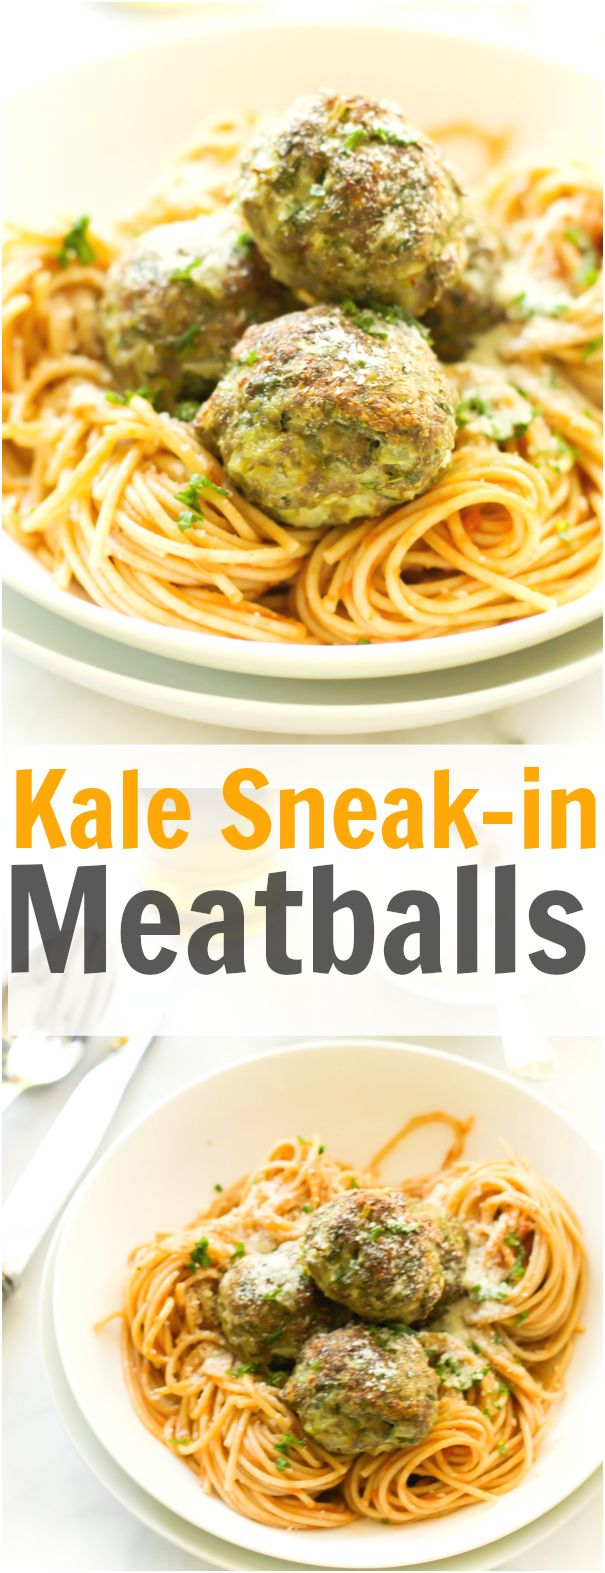 The Kale Sneak in Meatballs recipe is great to have healthier nutrients in your meal. You also can eat them on their own or with spaghetti and tomato sauce. primaverakitchen.com